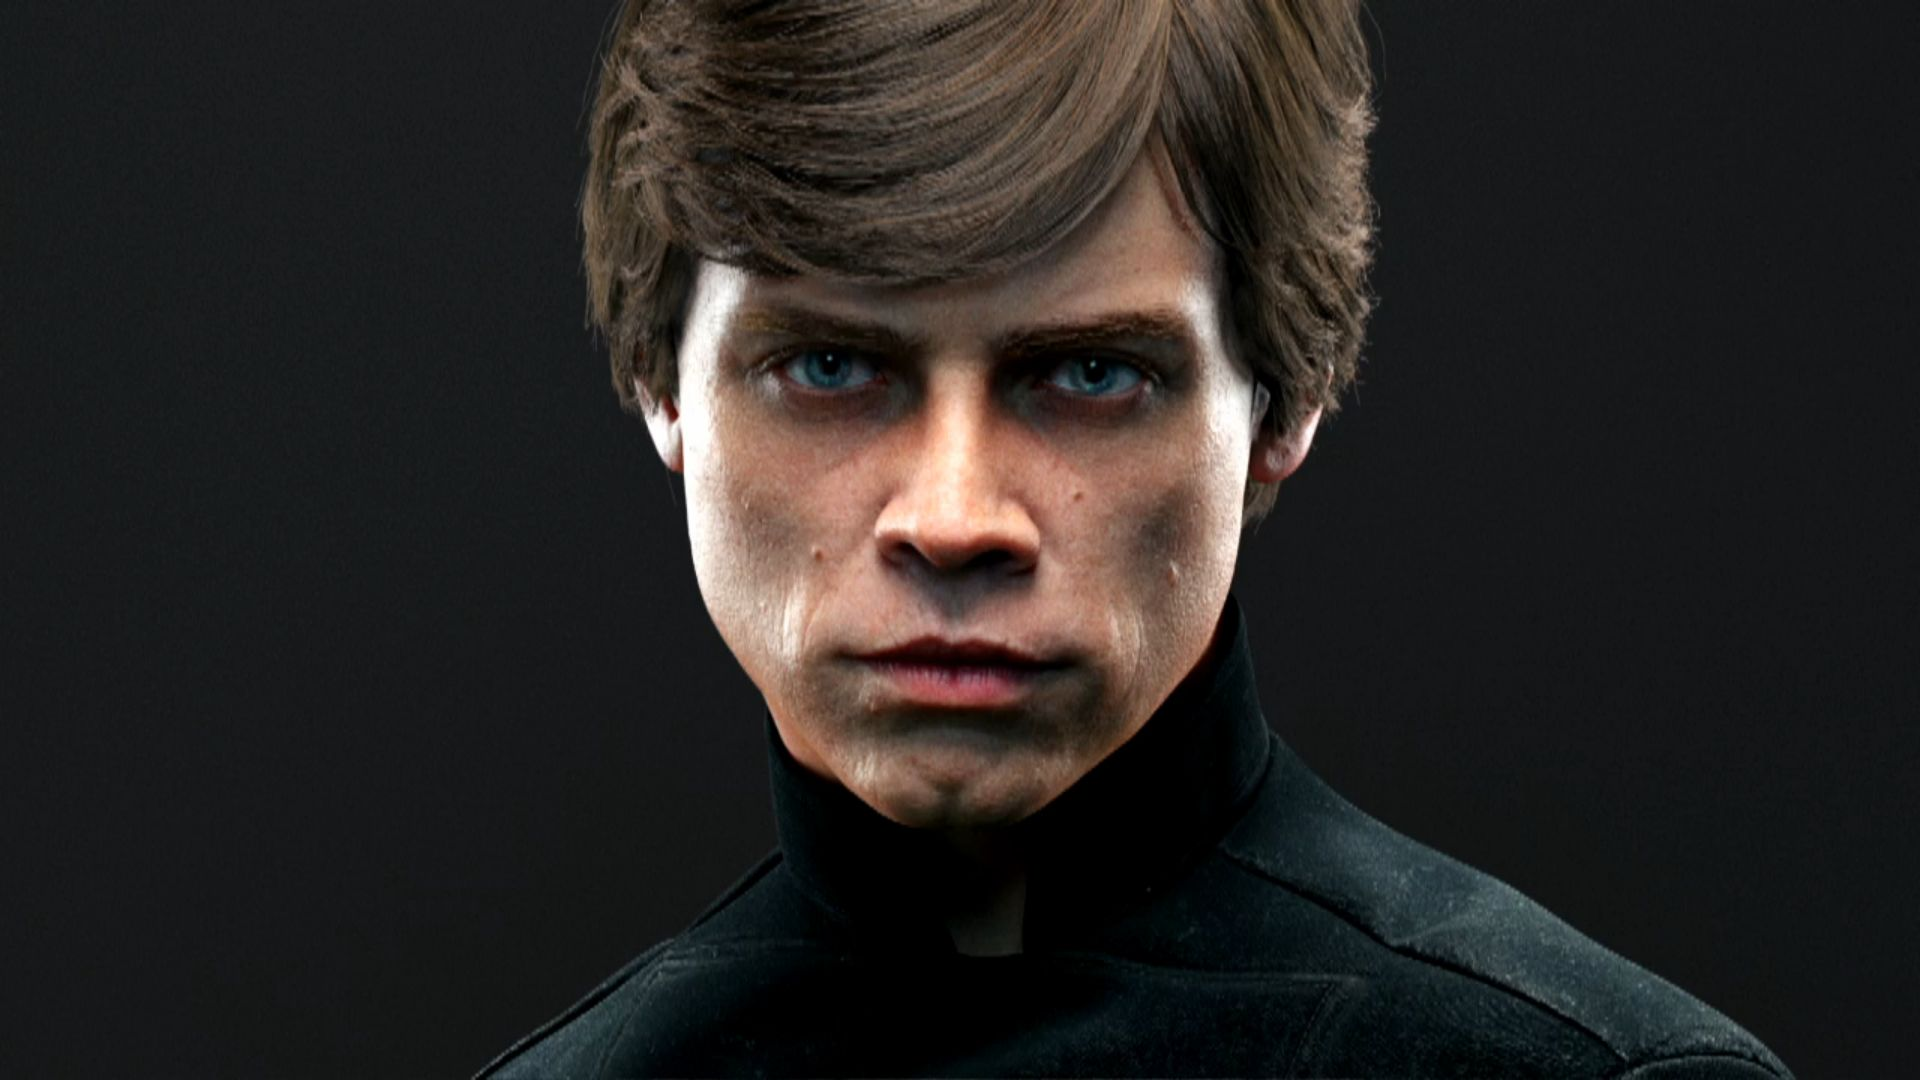 Star Wars Battlefront Awesome Luke Skywalker And Boba Fett Images